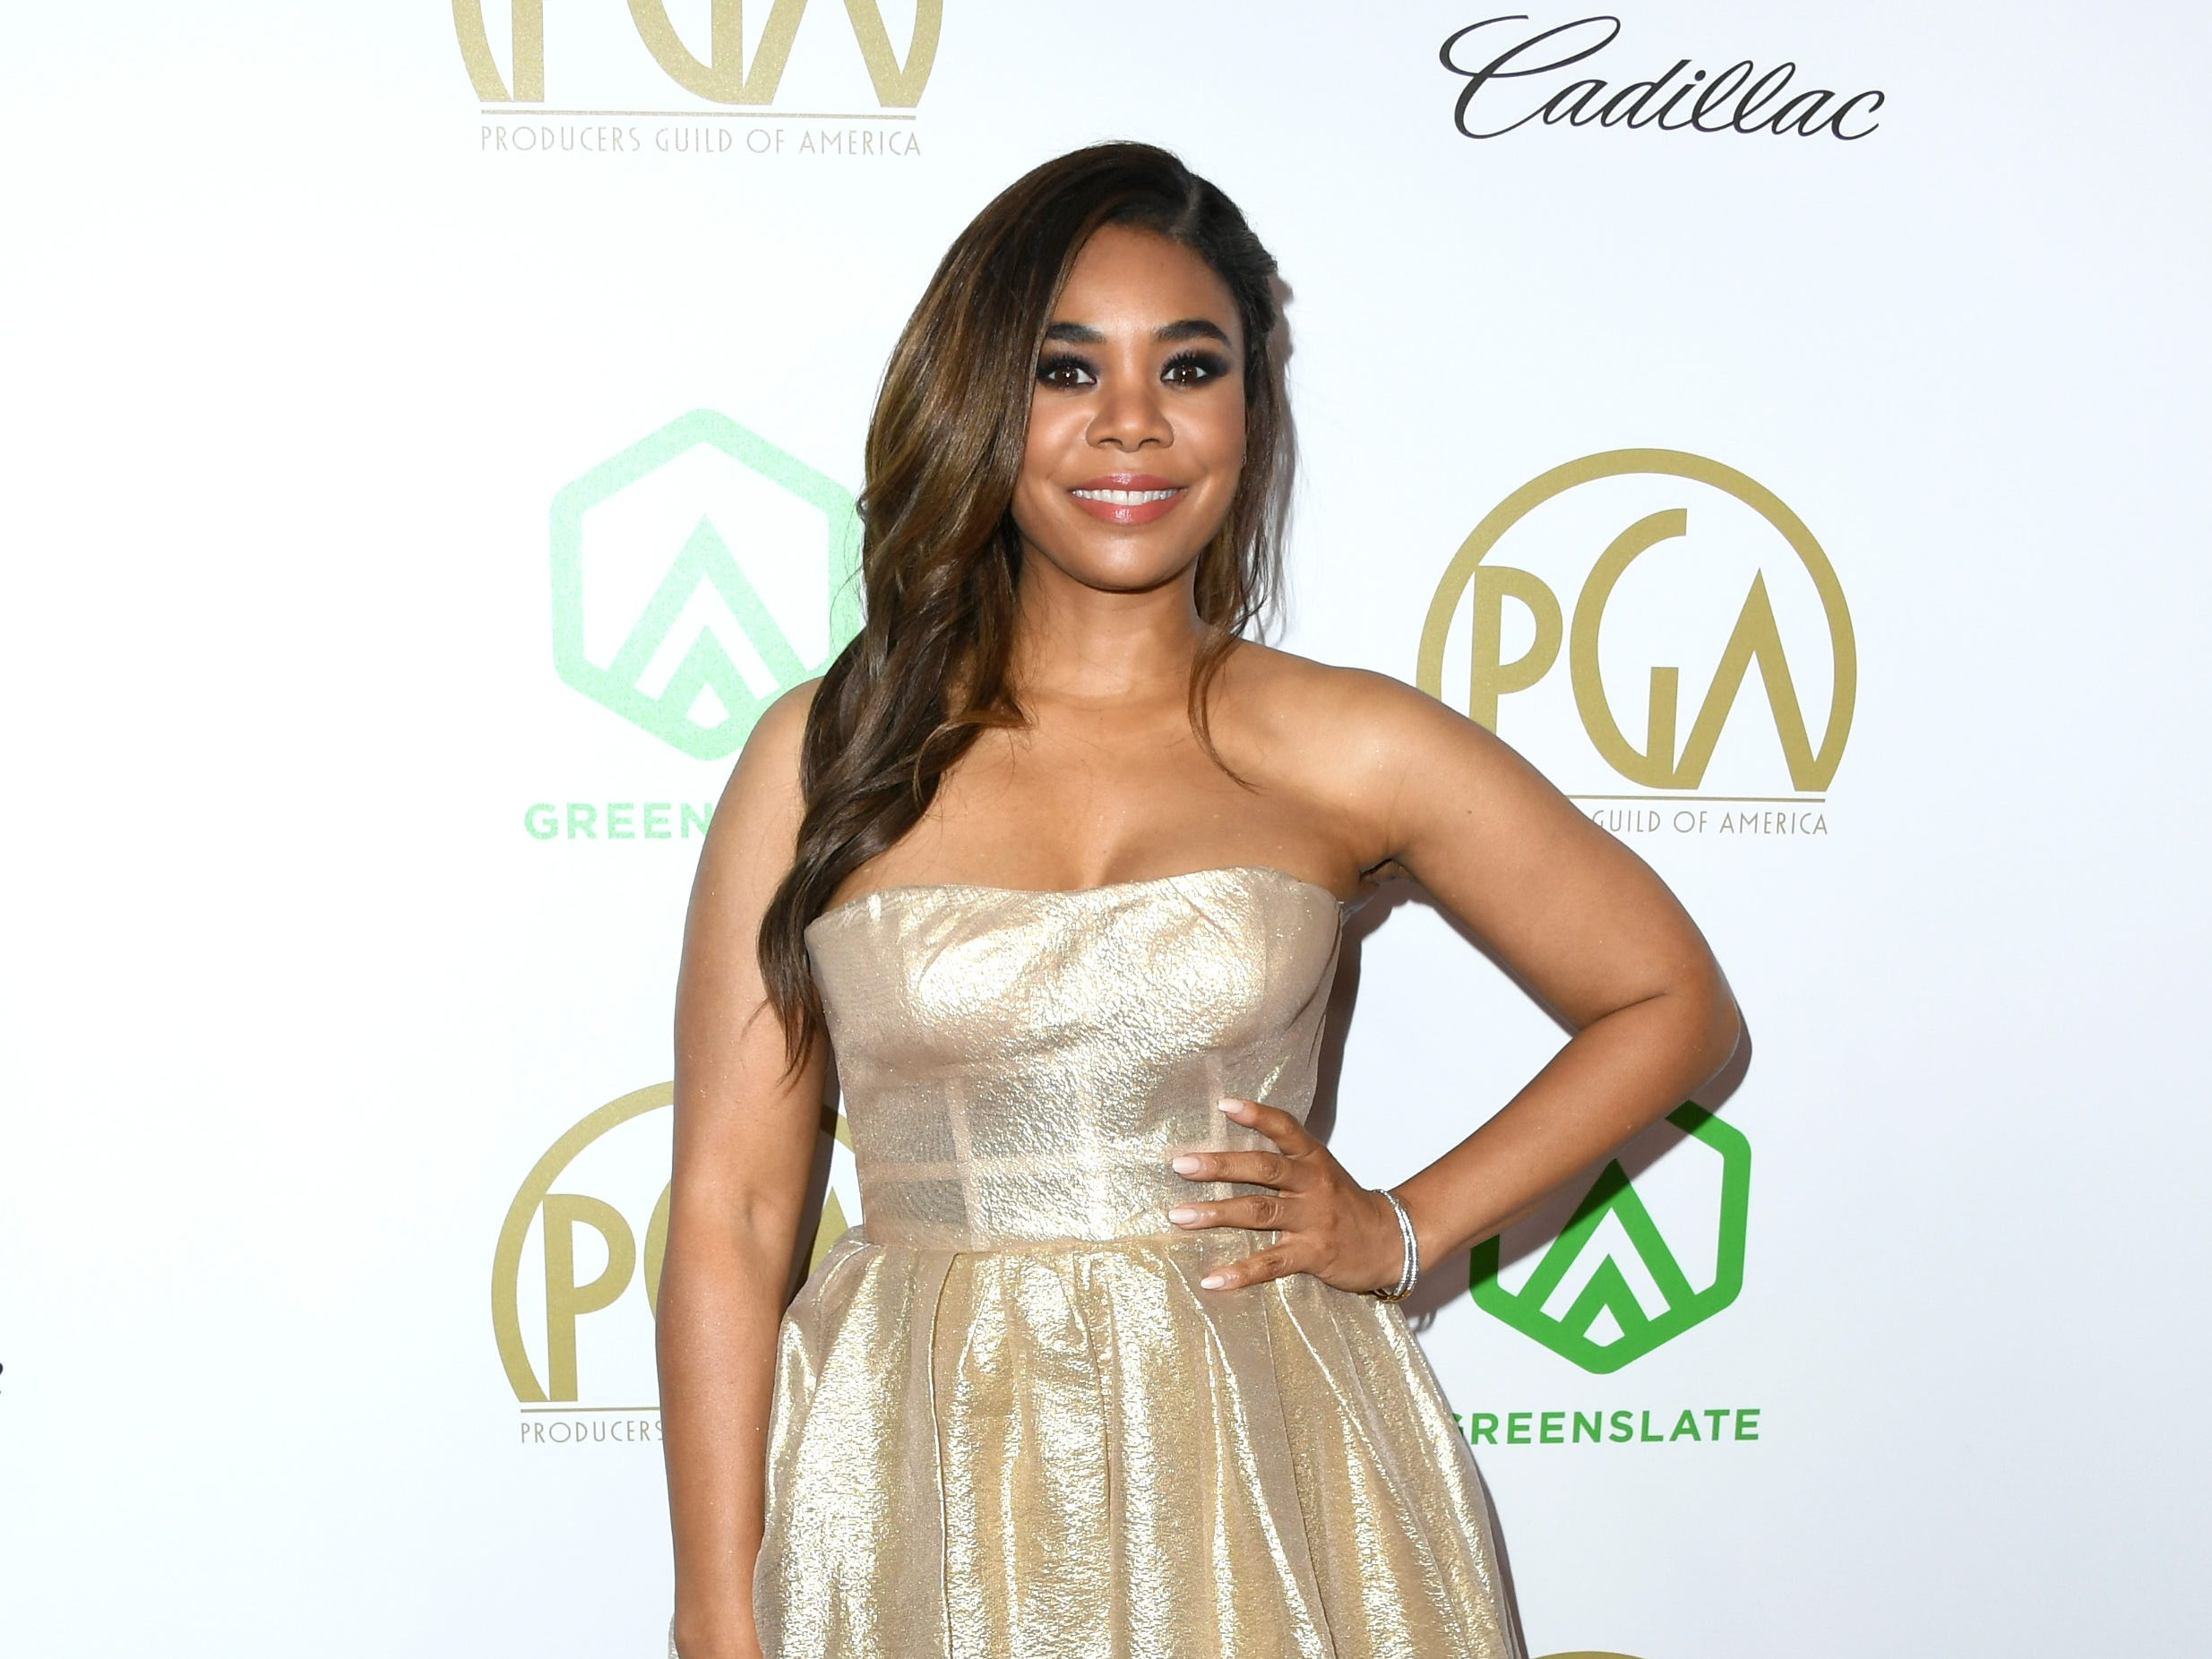 BEVERLY HILLS, CA - JANUARY 19:  Regina Hall attends the 30th annual Producers Guild Awards at The Beverly Hilton Hotel on January 19, 2019 in Beverly Hills, California.  (Photo by Jon Kopaloff/FilmMagic) ORG XMIT: 775277375 ORIG FILE ID: 1085411572